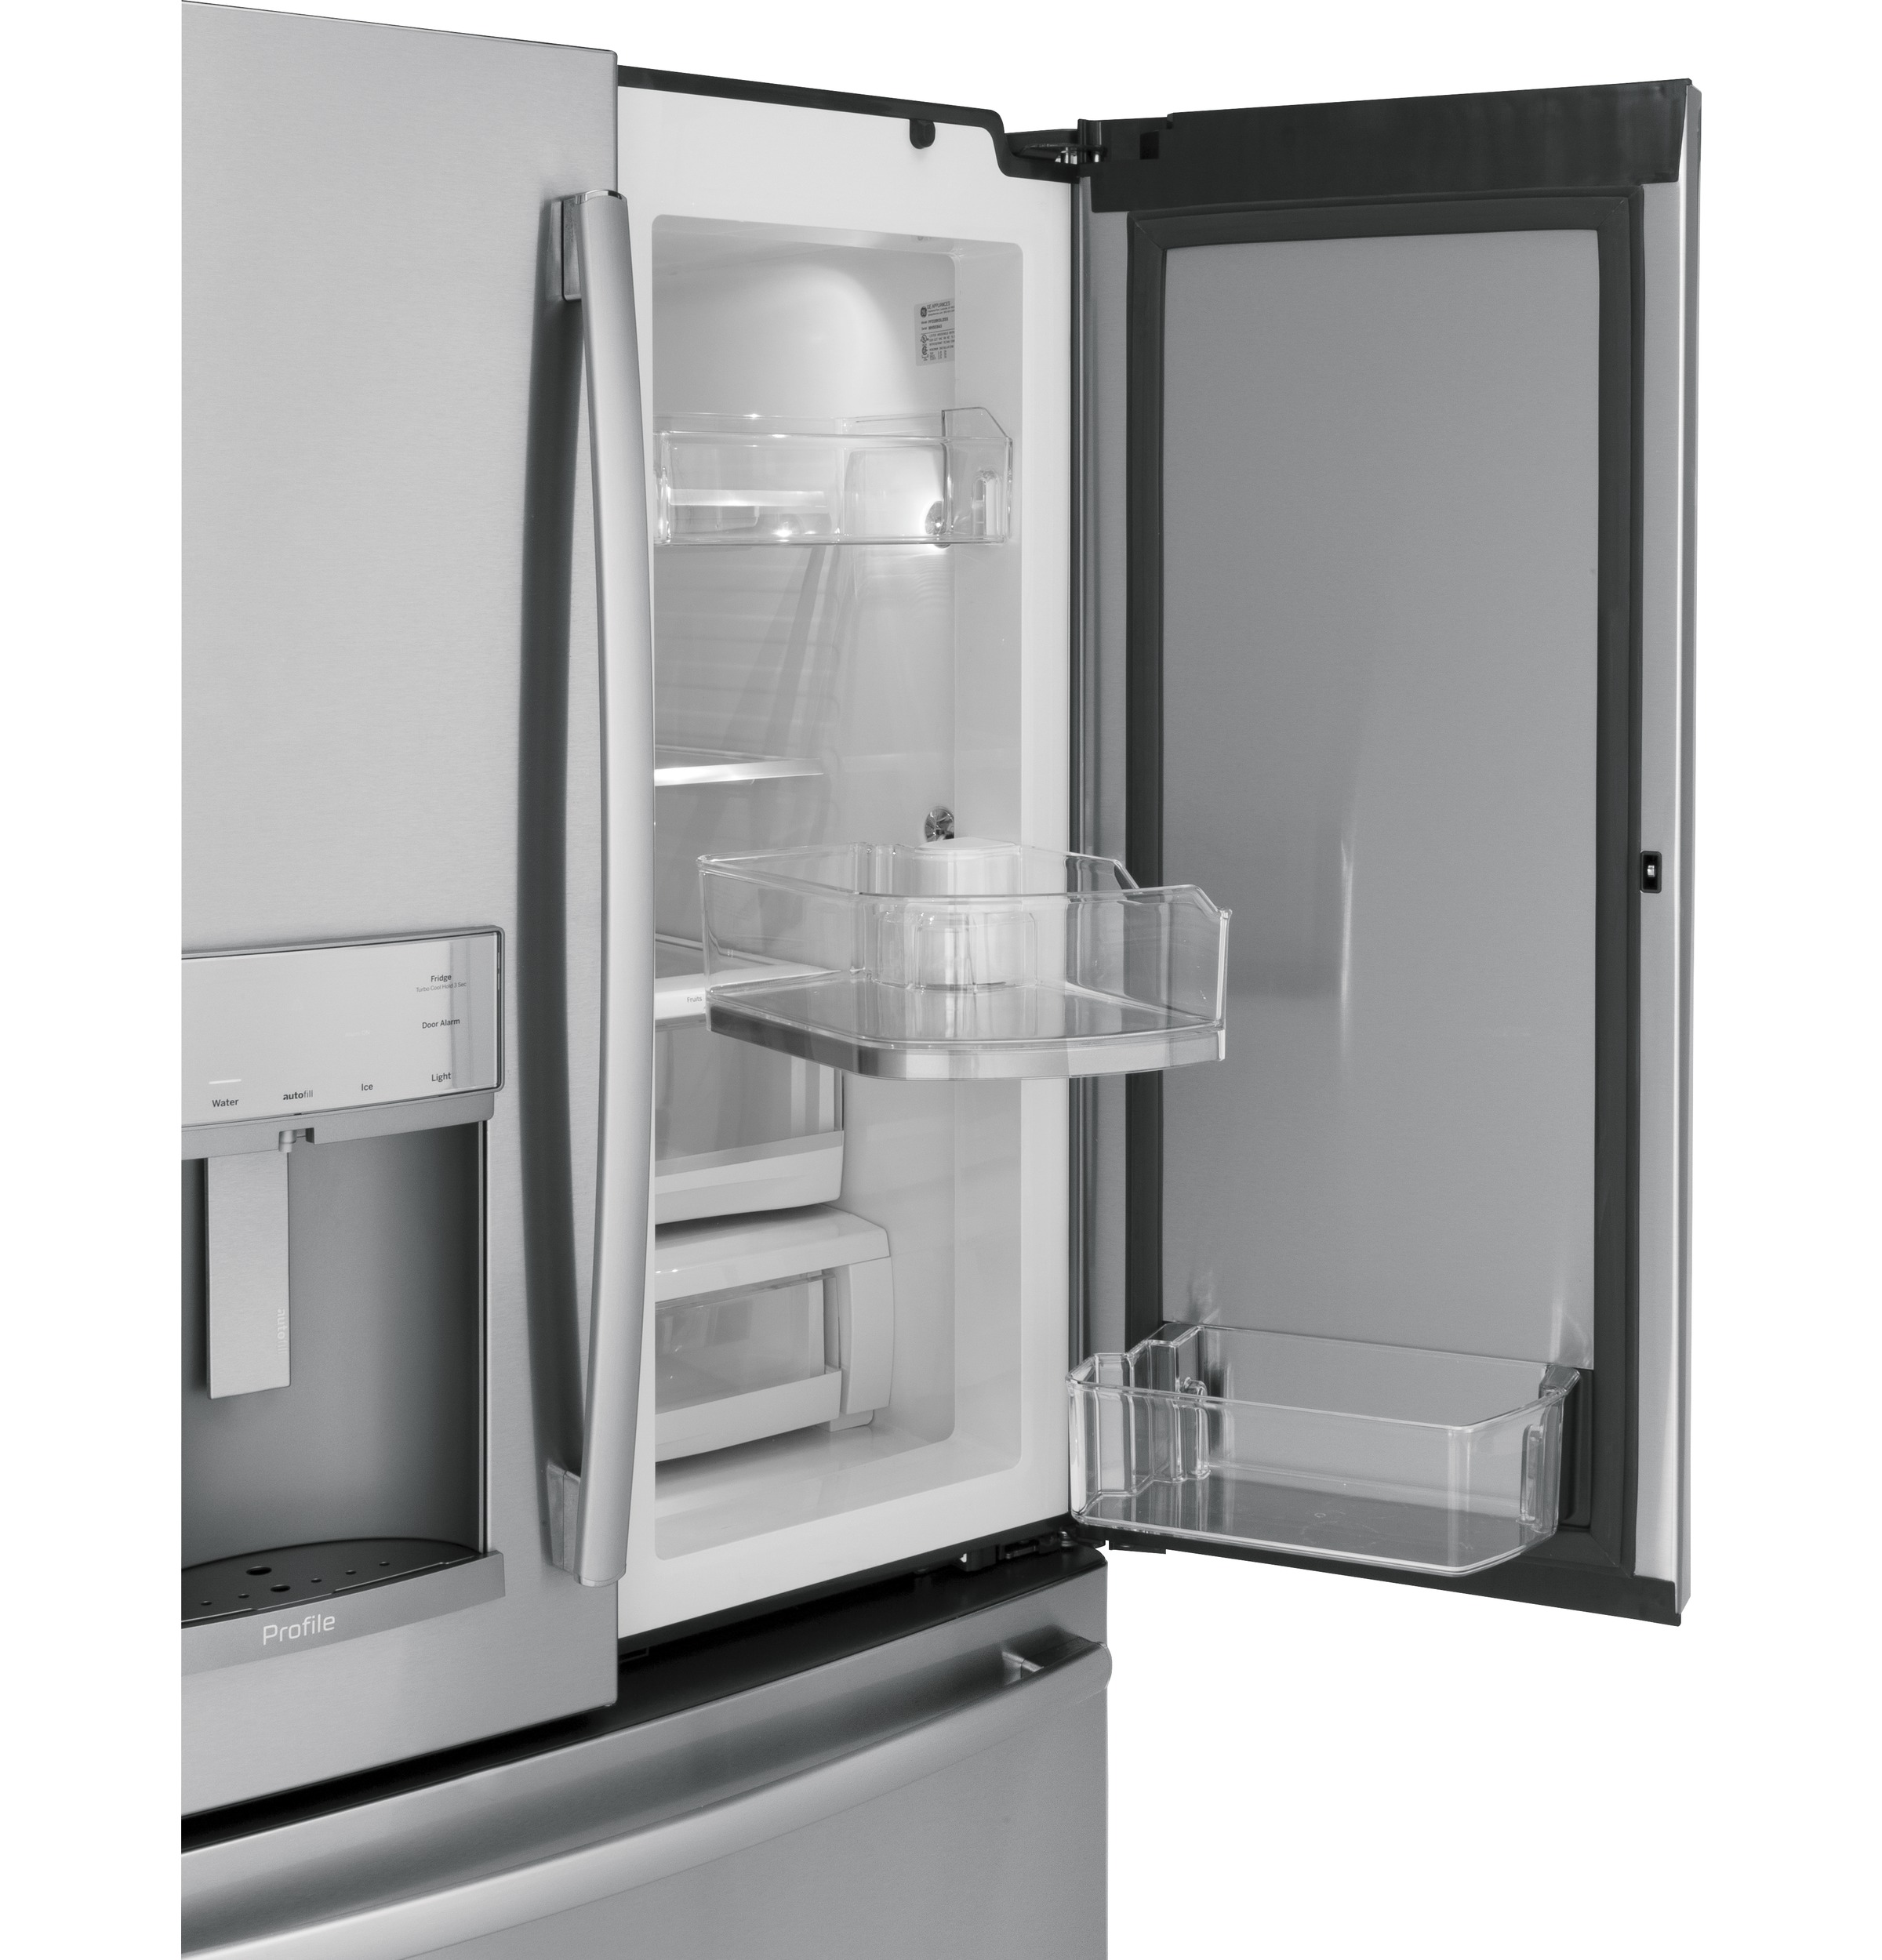 Model: PFD28KSLSS | GE Profile™ Series 27.8 Cu. Ft. French-Door Refrigerator with Door In Door and Hands-Free AutoFill